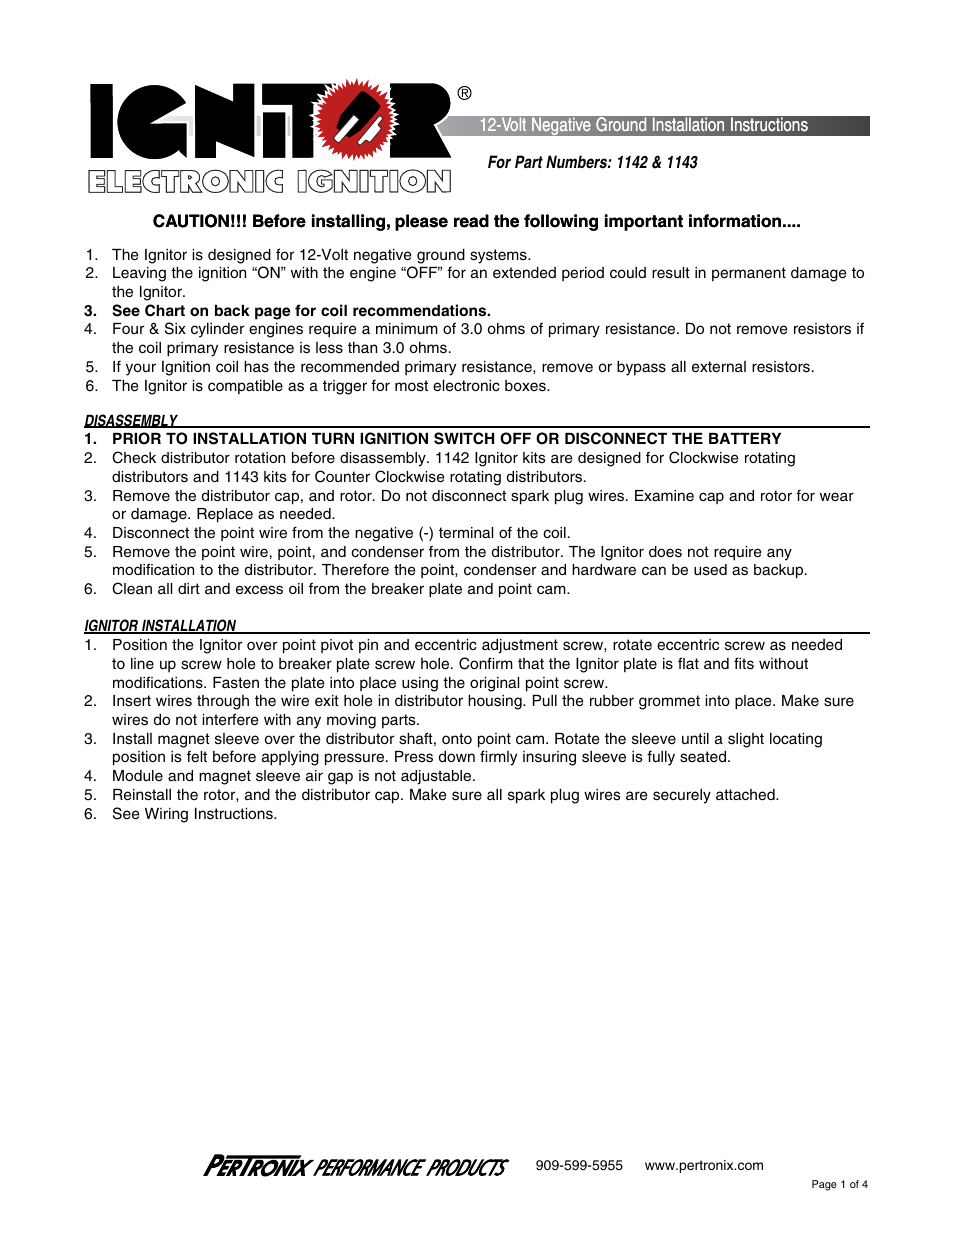 PerTronix Ignitor 1143 User Manual | 4 pages | Also for: Ignitor 1142